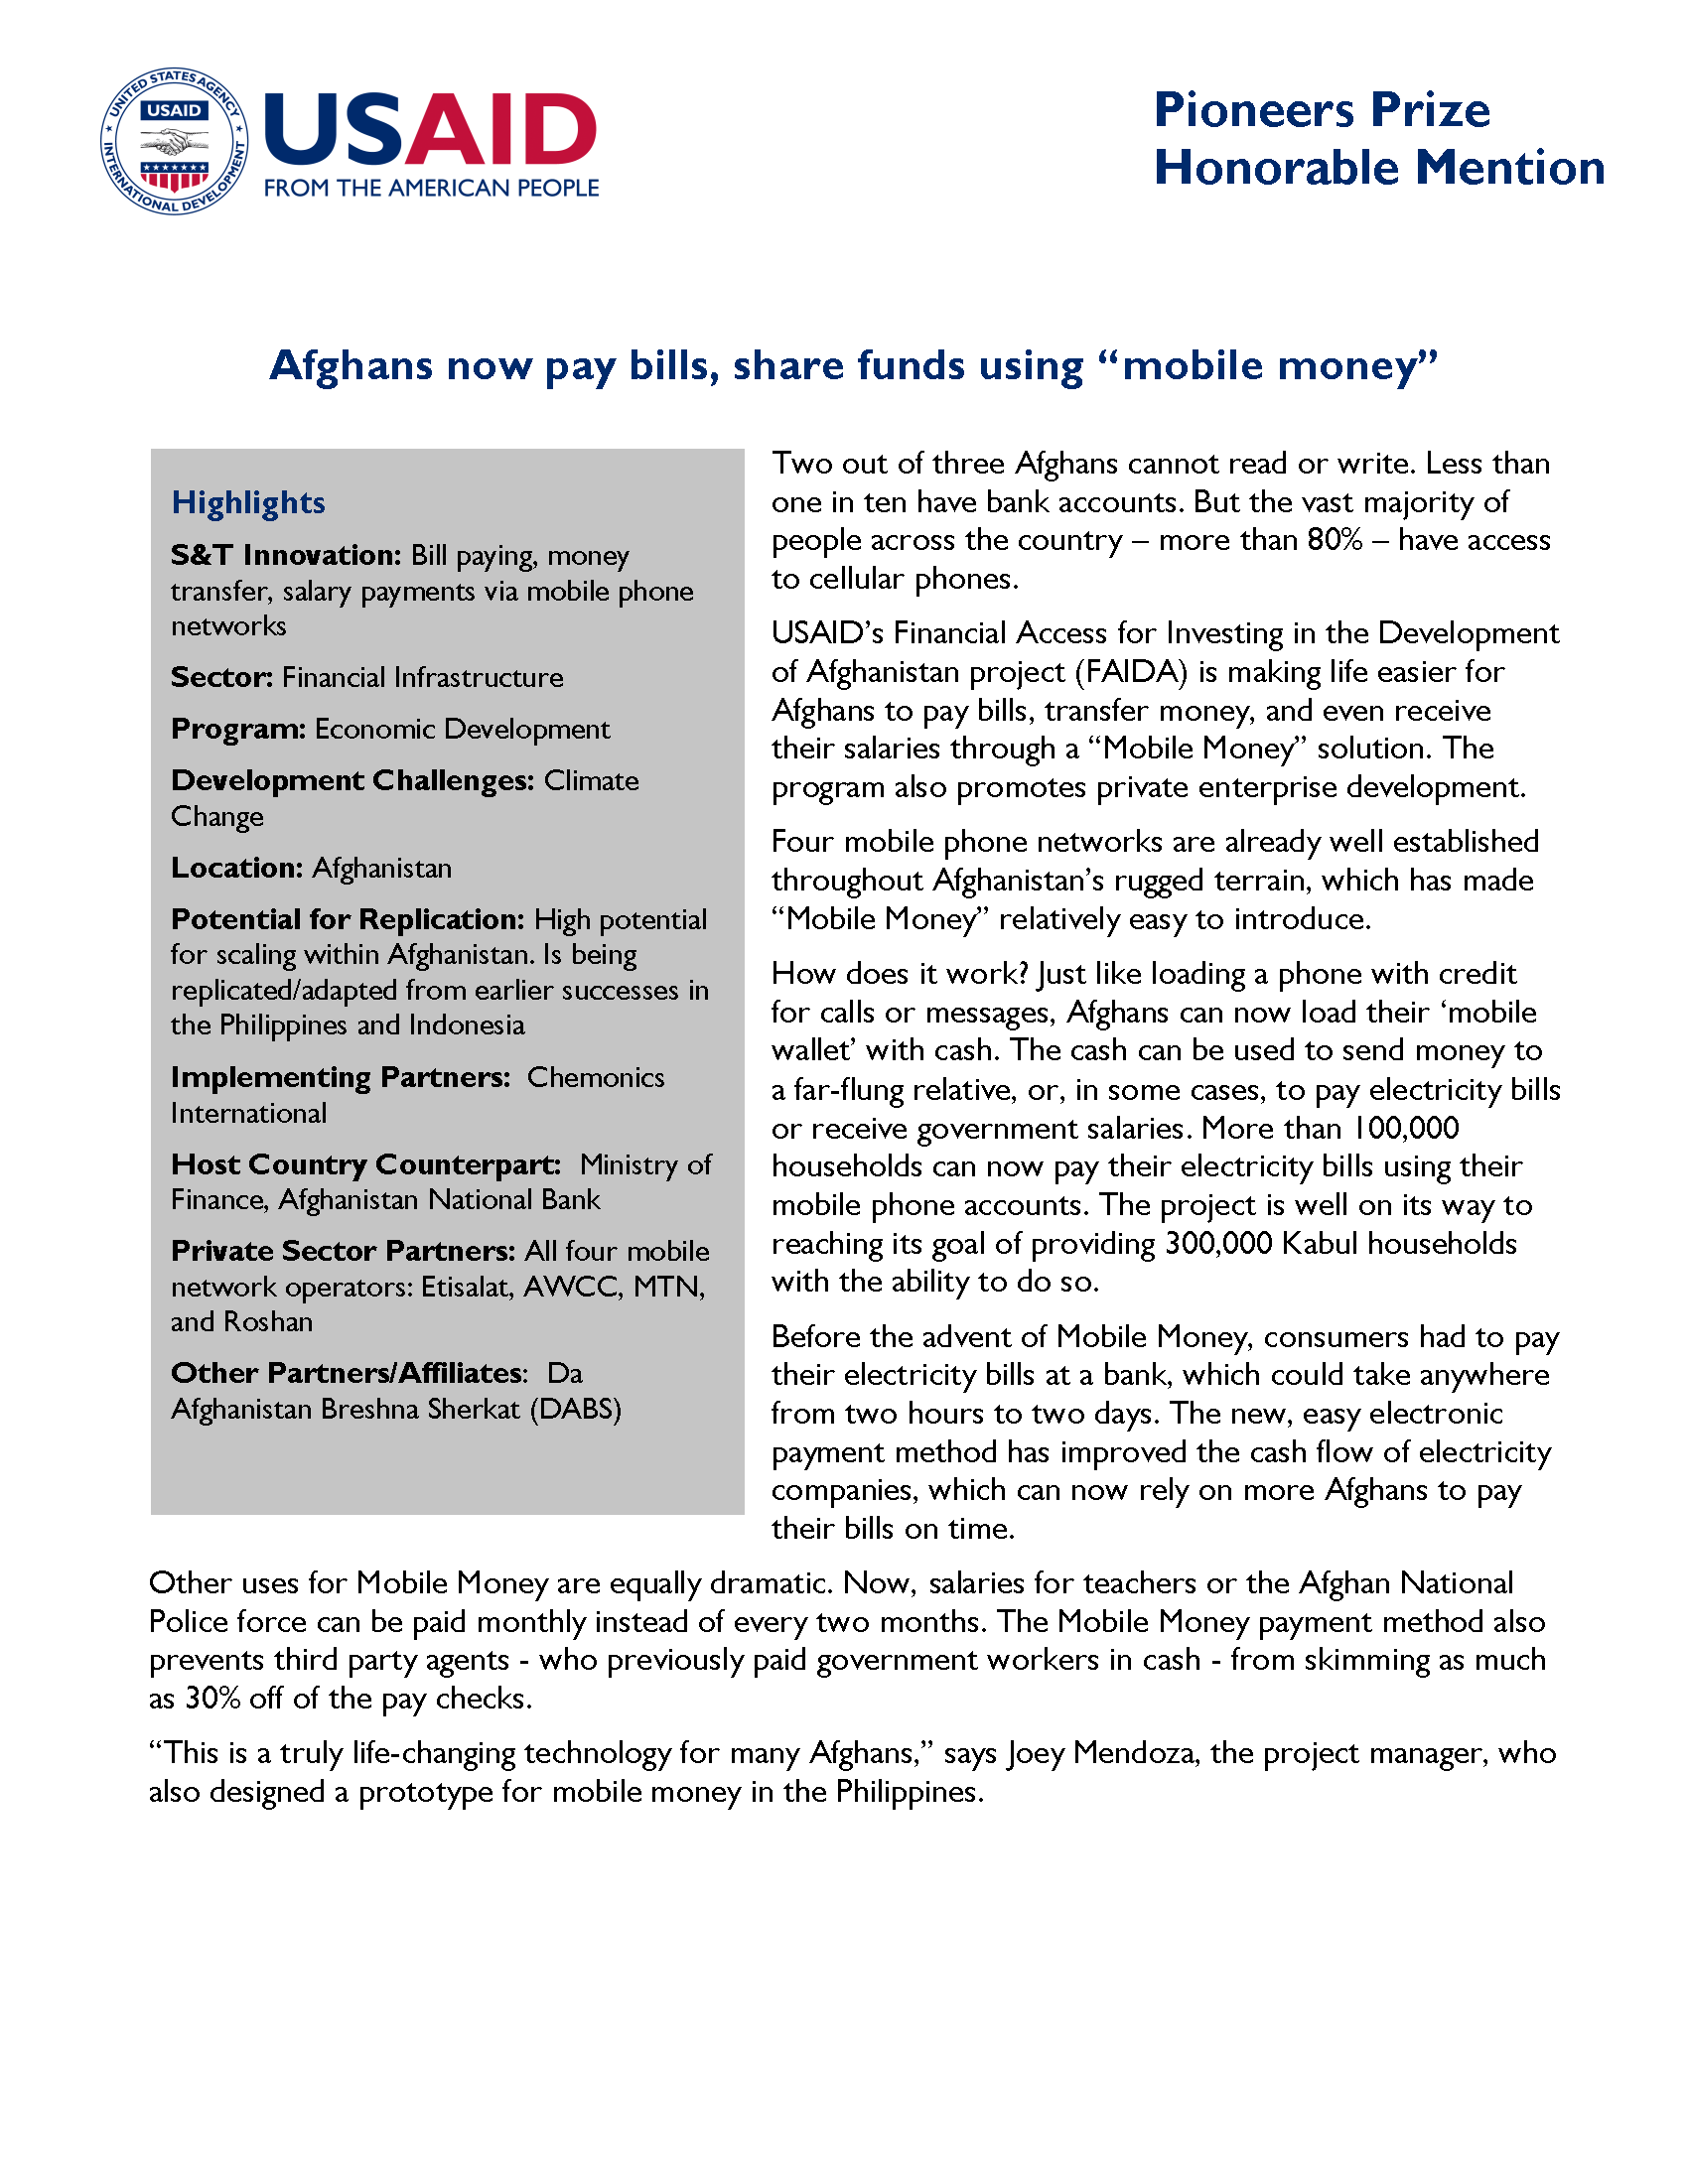 Mobile money through SMS technology in Afghanistan